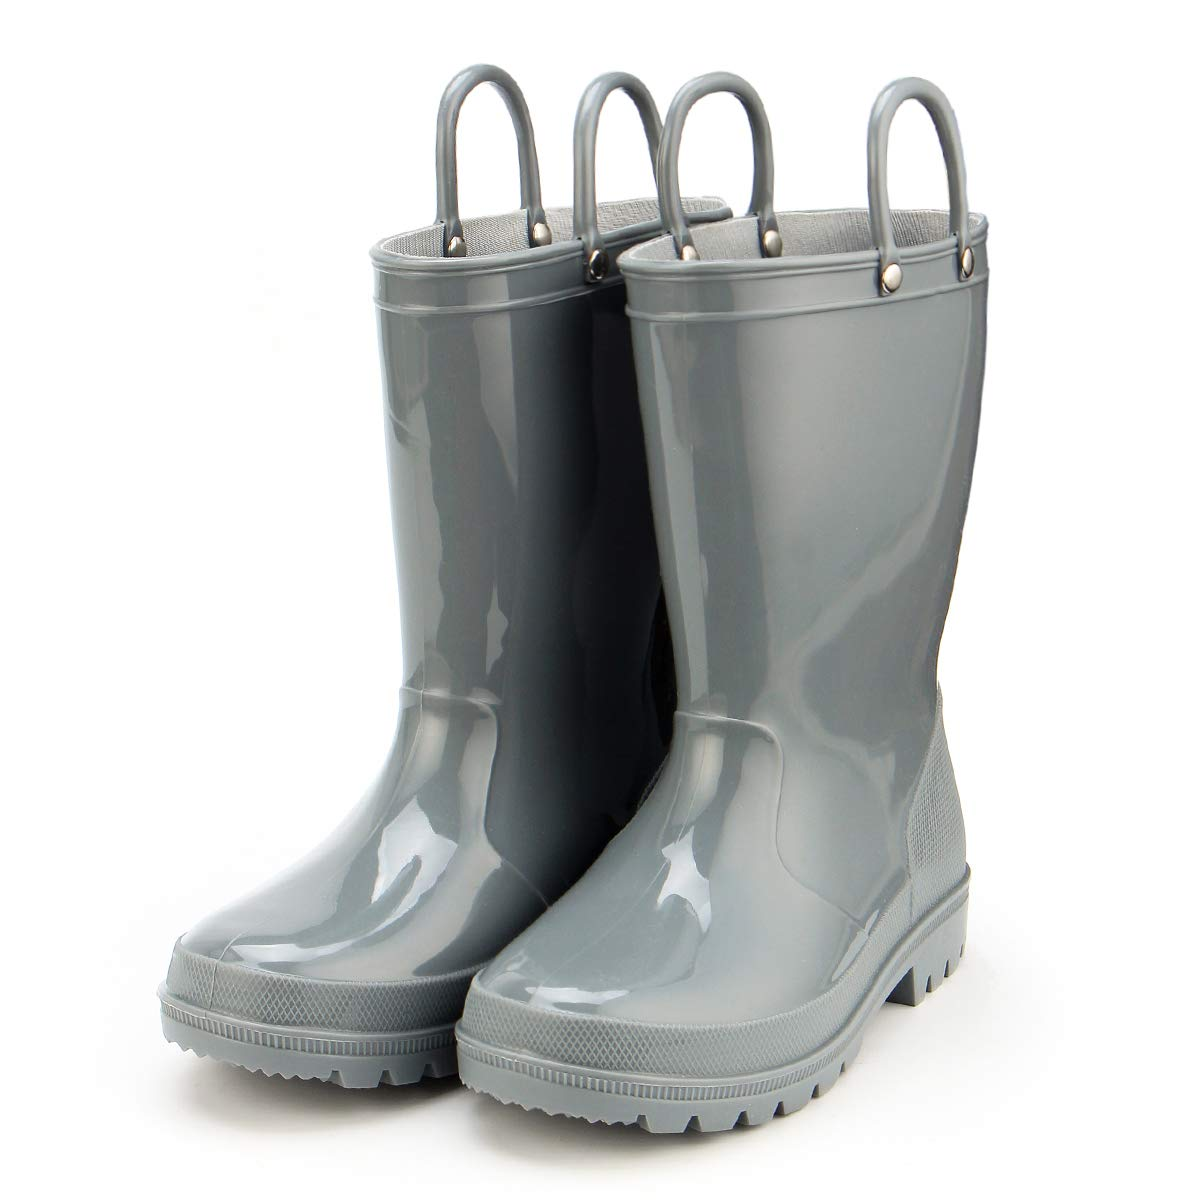 KomForme Kids Rain Boots, Environmental Material Boots with Memory Foam Insole and Easy-on Handles Grey by KKomForme (Image #1)